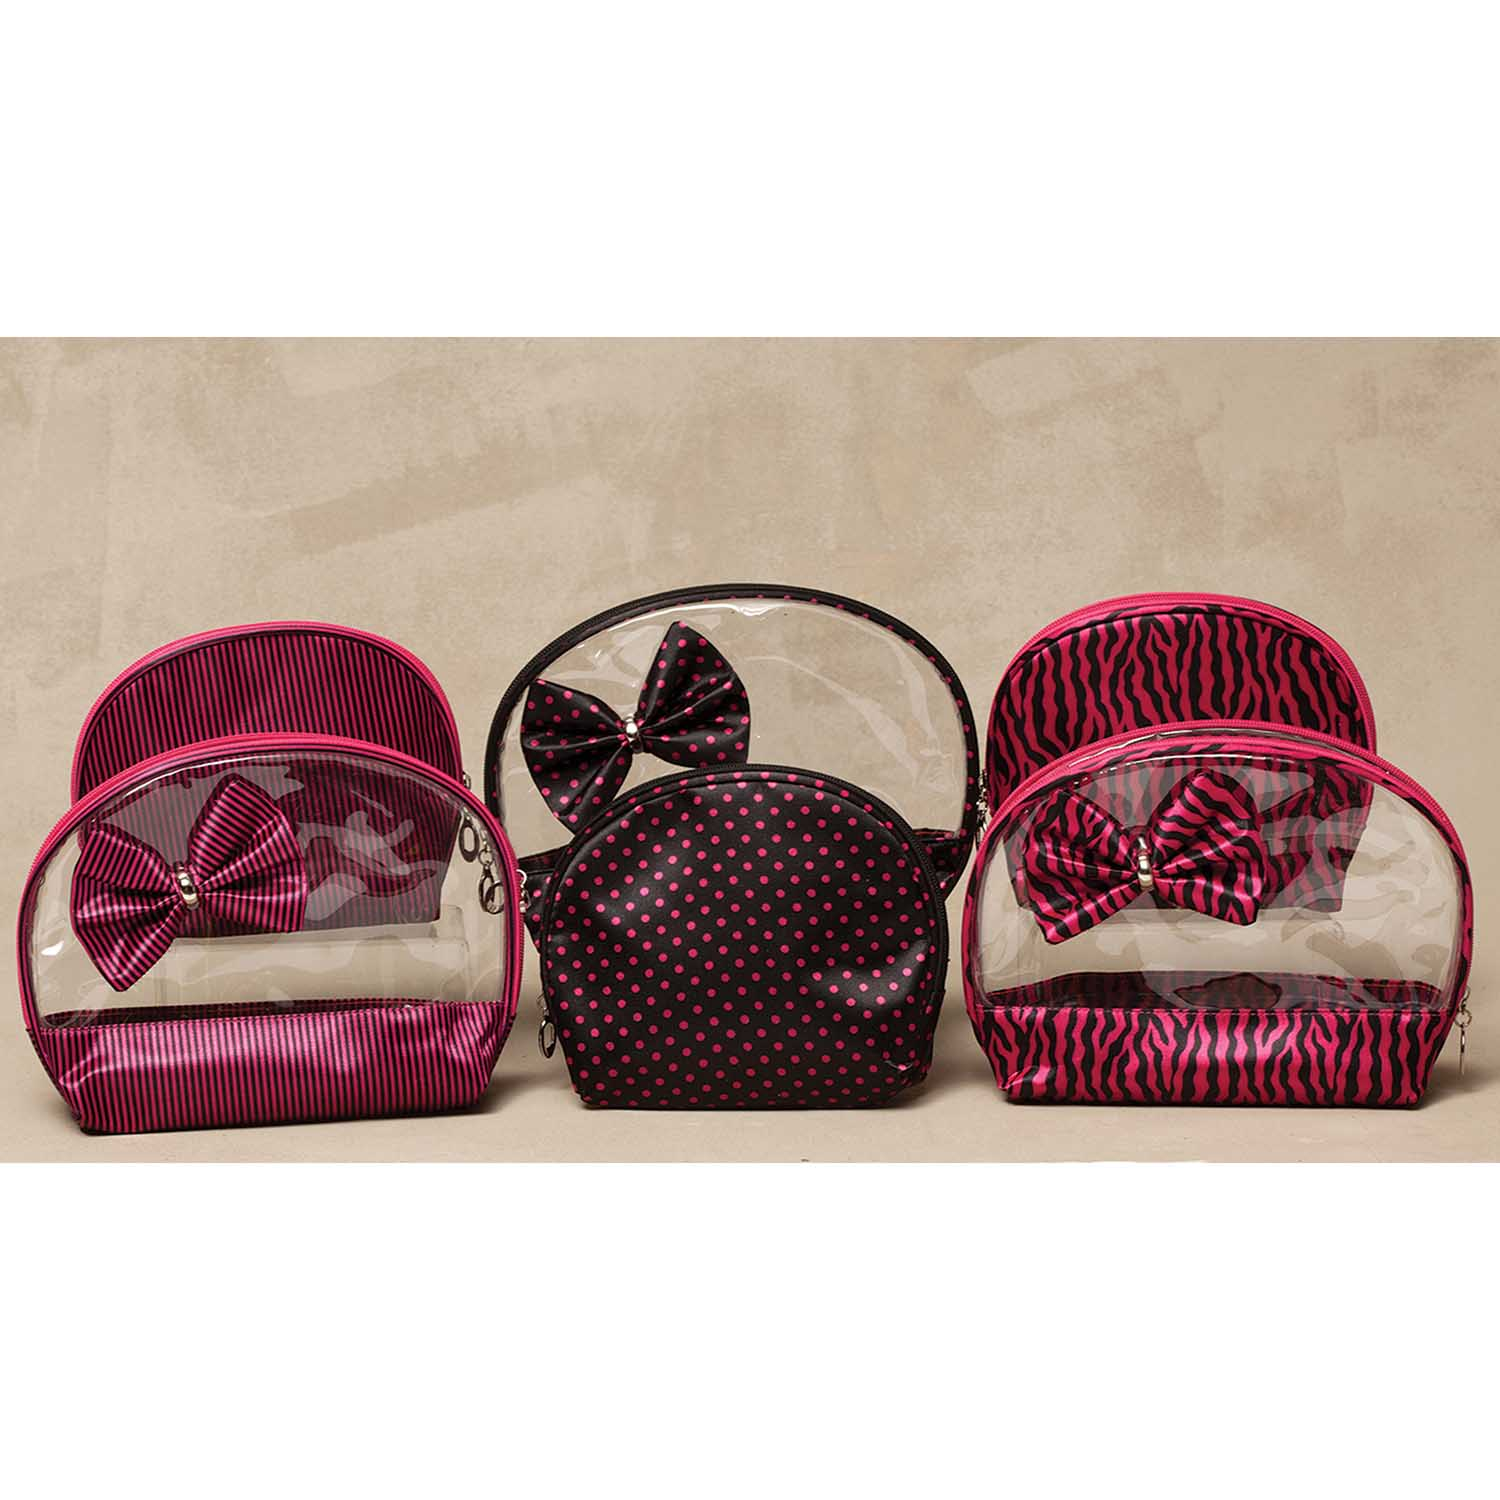 Hot Pink/Black Accessory 2 Bag Set with Bow 3 Assorted *30sp